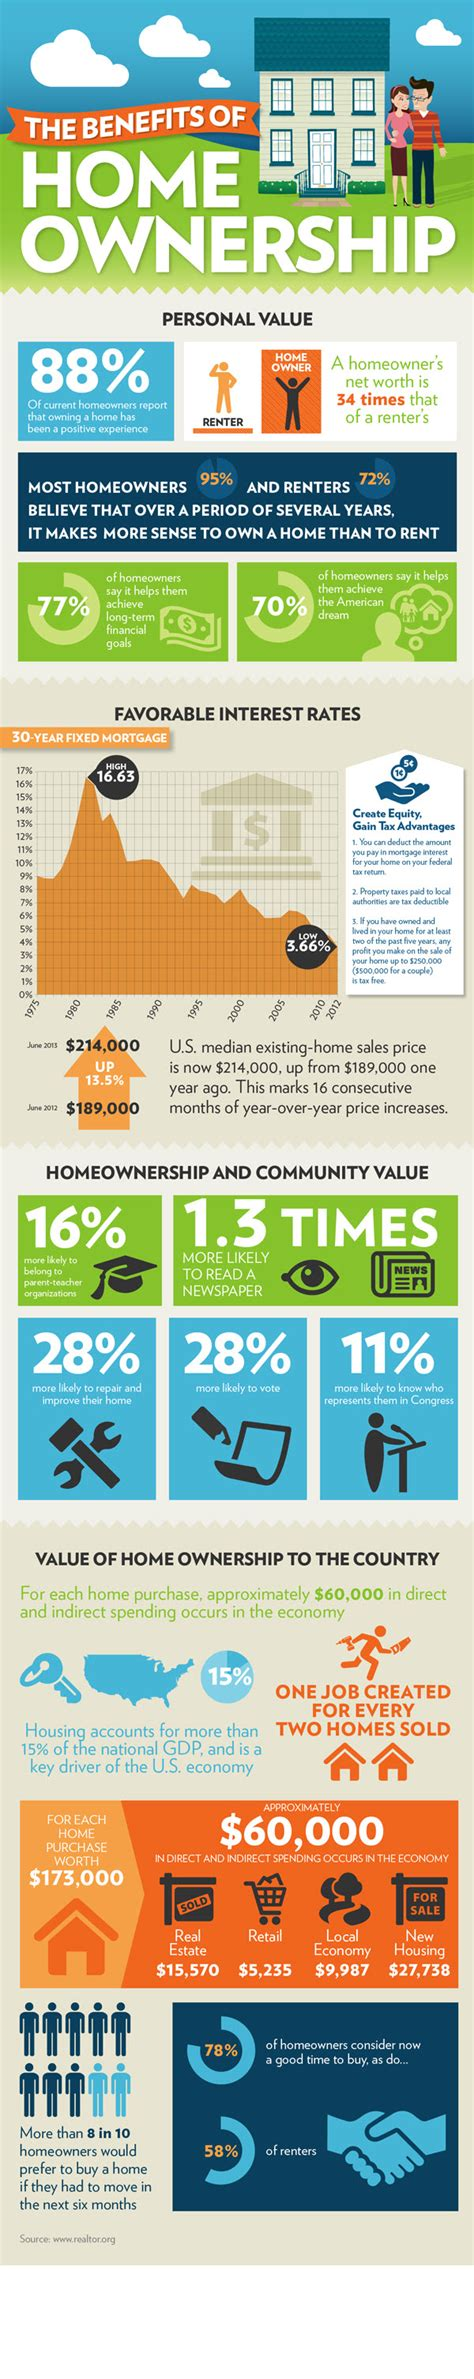 Records Of Home Ownership The Benefits Of Home Ownership Infographic